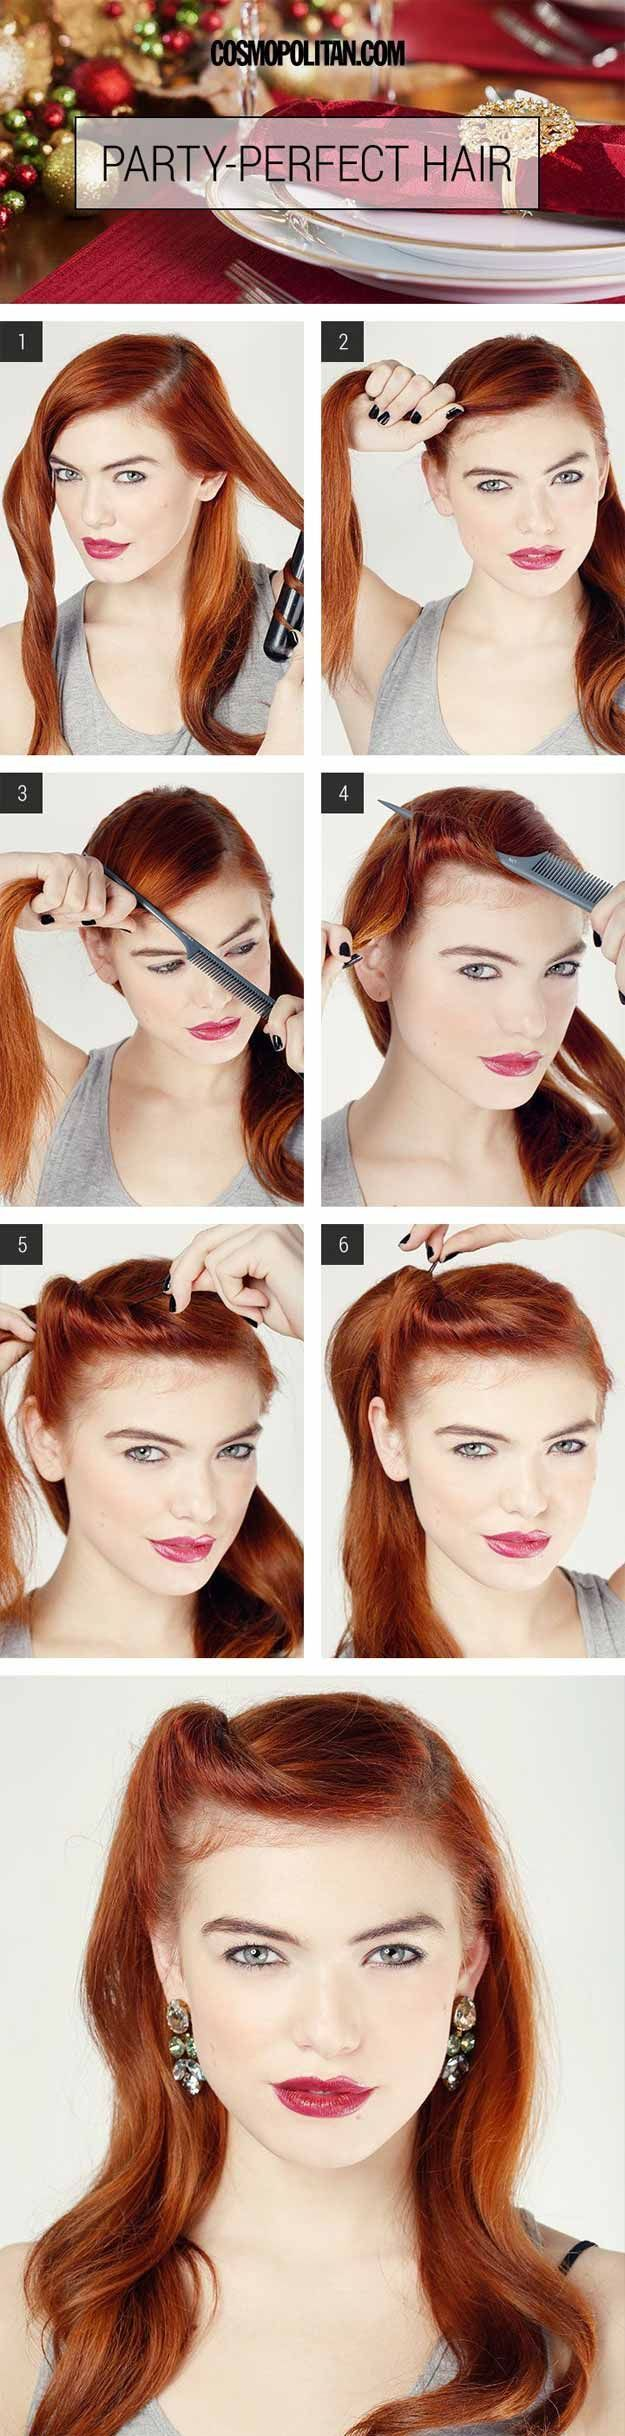 Best Hairstyles For Your 30s -Party Perfect Glam Roll- Hair Dos And Don'ts For...